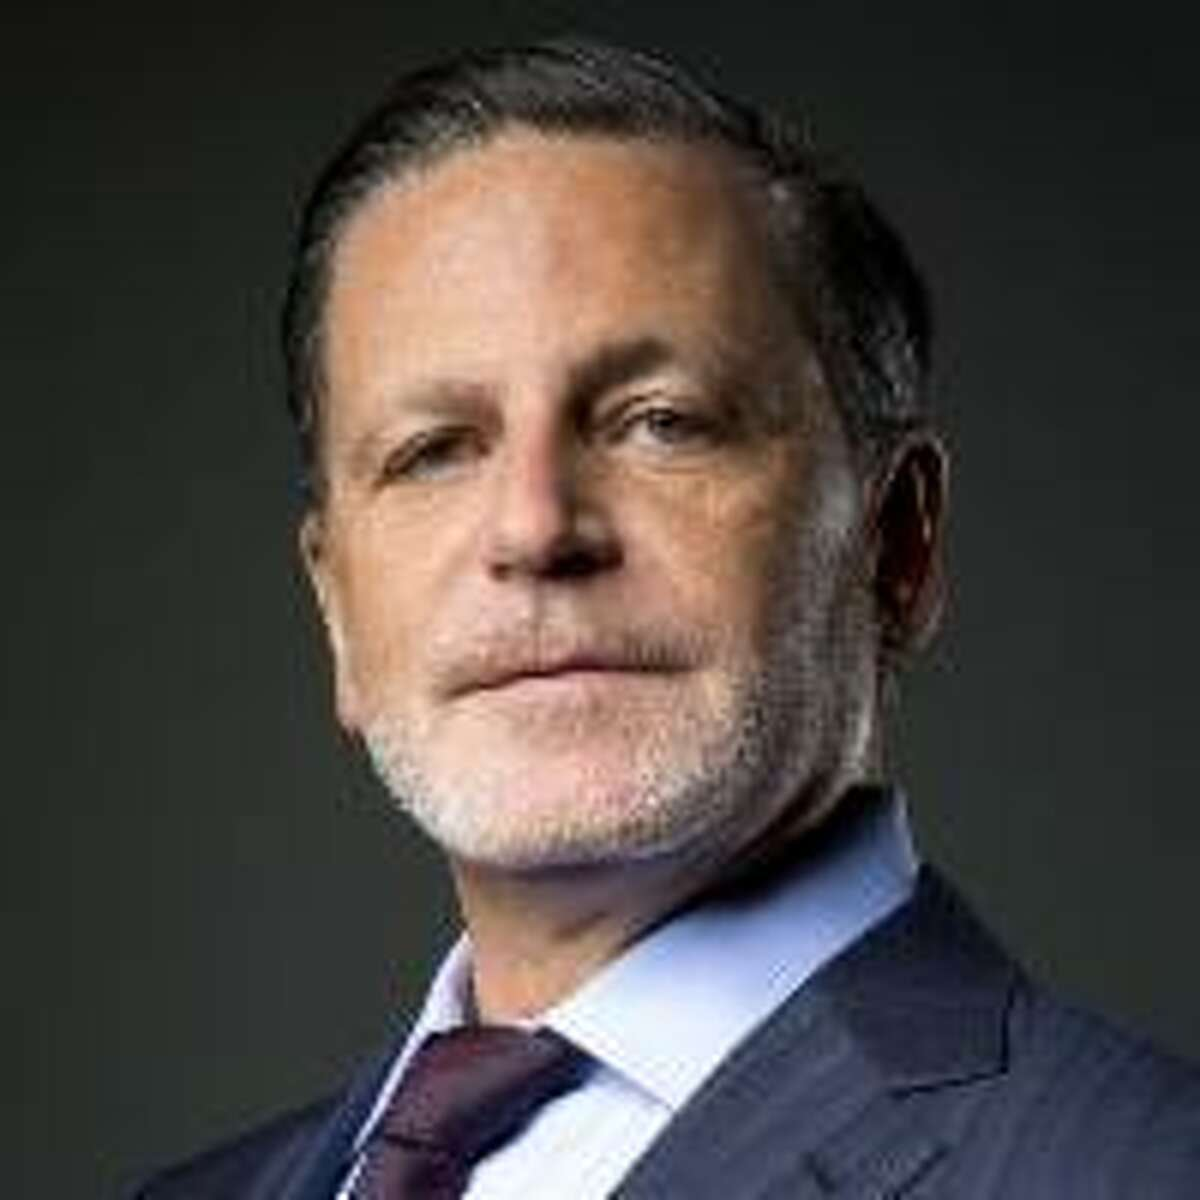 Daniel Gilbert, cofounder of Quicken Loans, is worth an estimated $30.9 billion and was ranked 23 on Forbes' list of 2021 billionaires. Gilbert and his companies have invested $5.6 billion to purchase and rehab a swath of buildings in downtown Detroit, with a plan to create 24,000 jobs, according to Forbes.